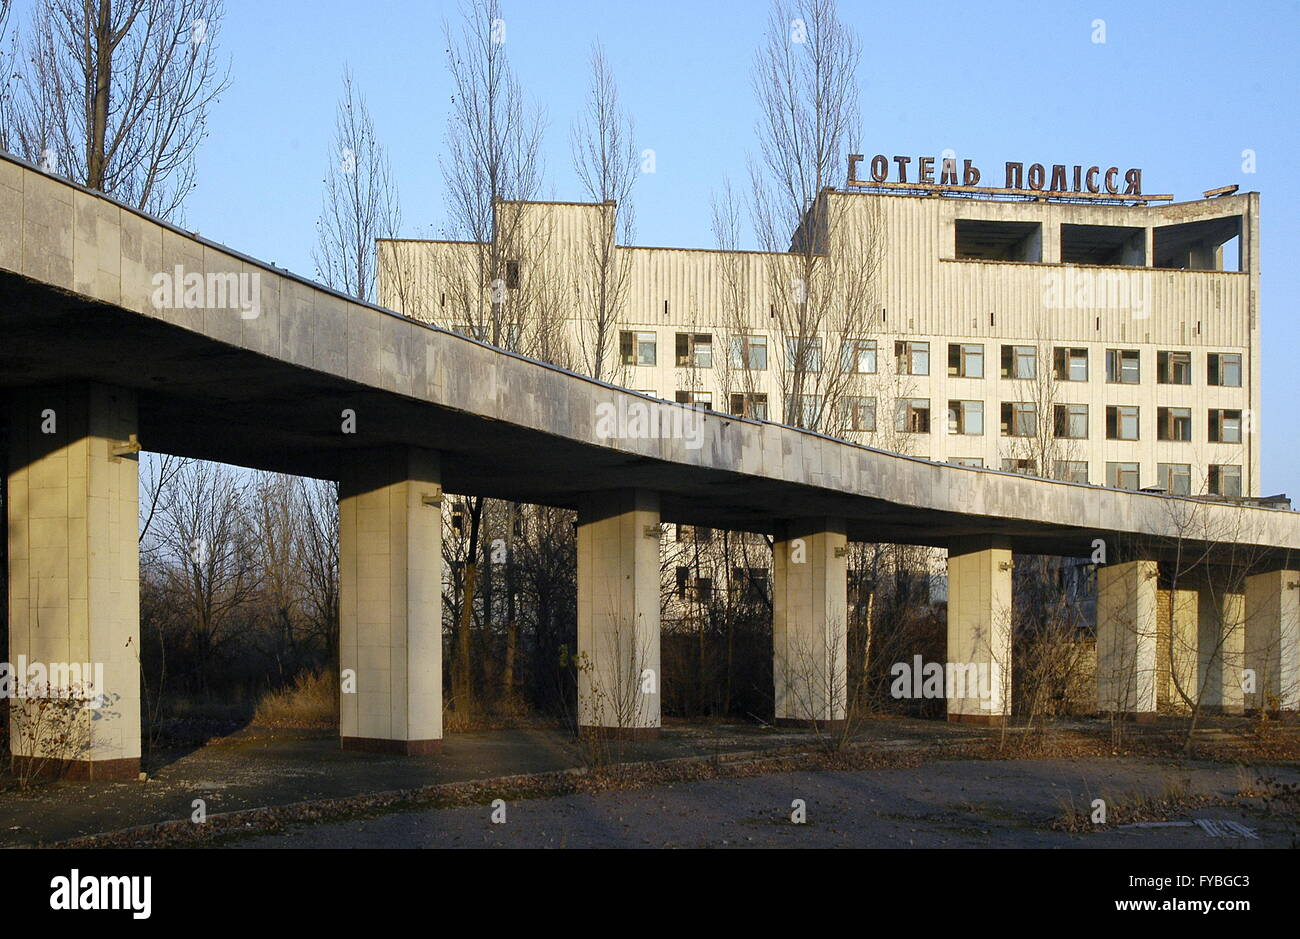 PRIPYAT, UKRAINE. Pictured in this file image is the abandoned Polesye hotel near the Chernobyl power station. On - Stock Image